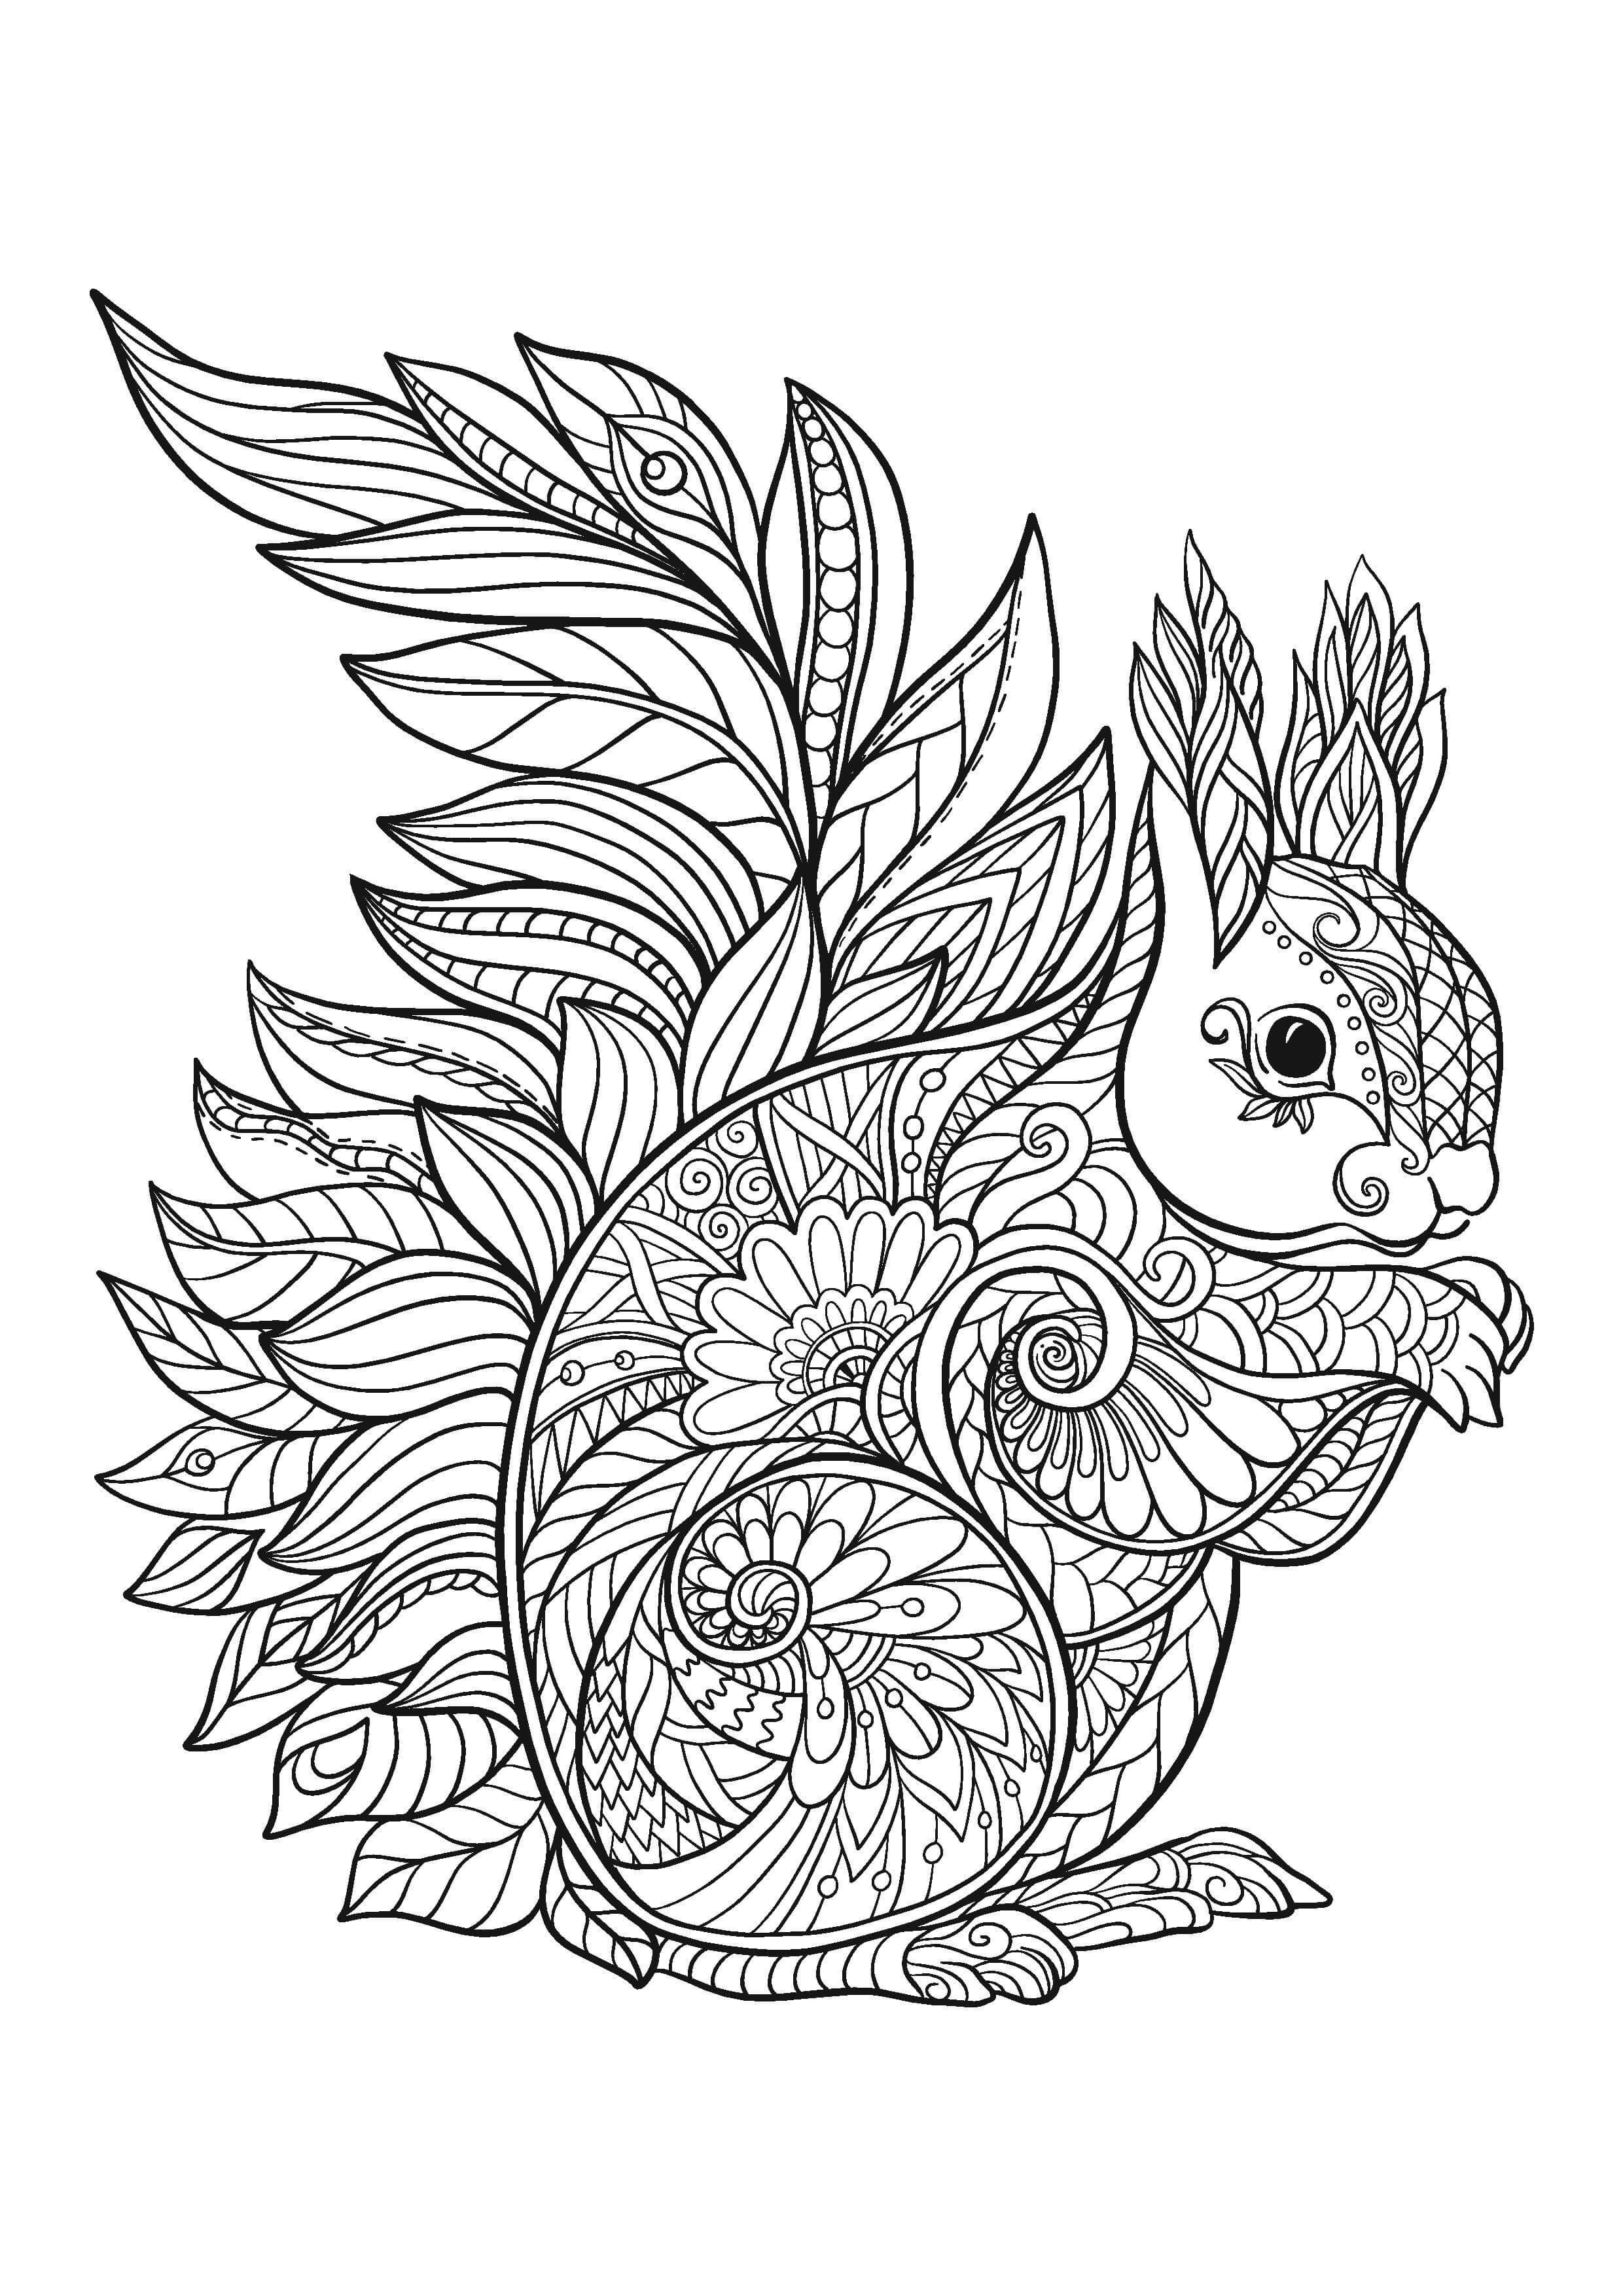 The Mindful Maven Club Animal Coloring Pages Mandala Coloring Pages Coloring Books [ 3508 x 2480 Pixel ]